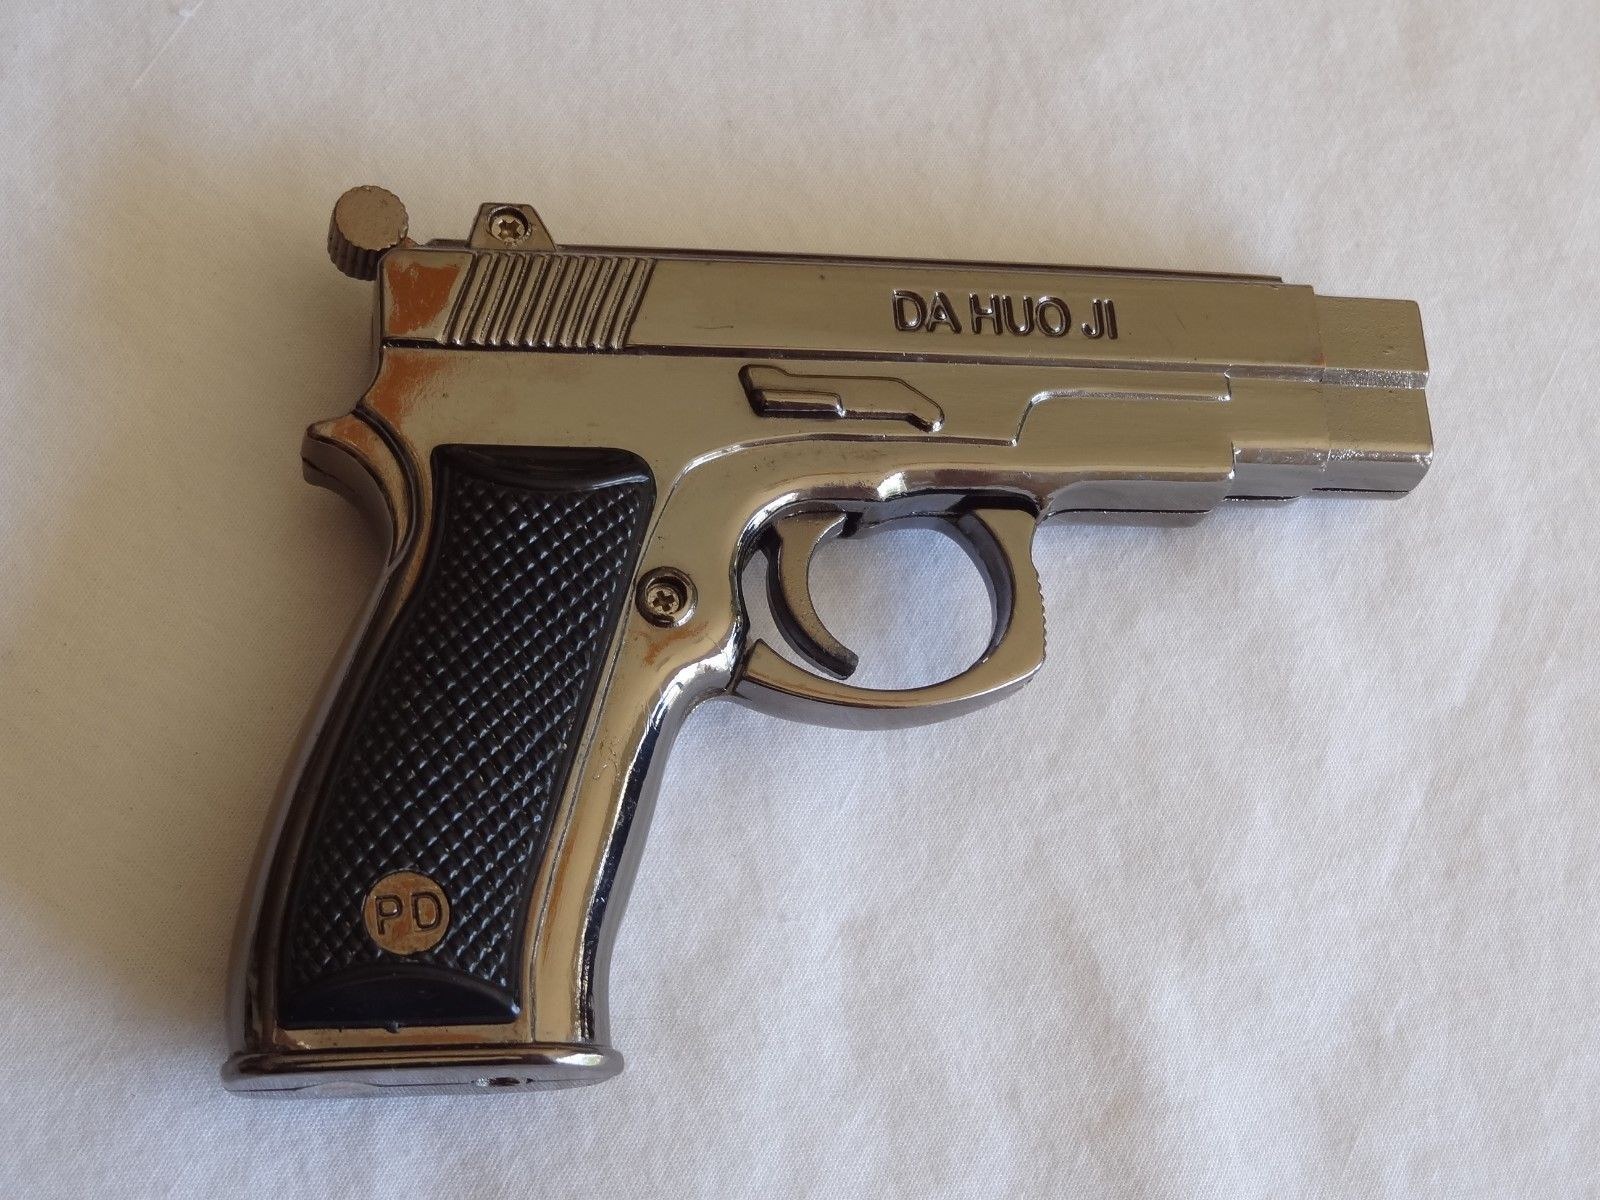 4 Novelty Gun Pistol Shaped Cigarette and similar items